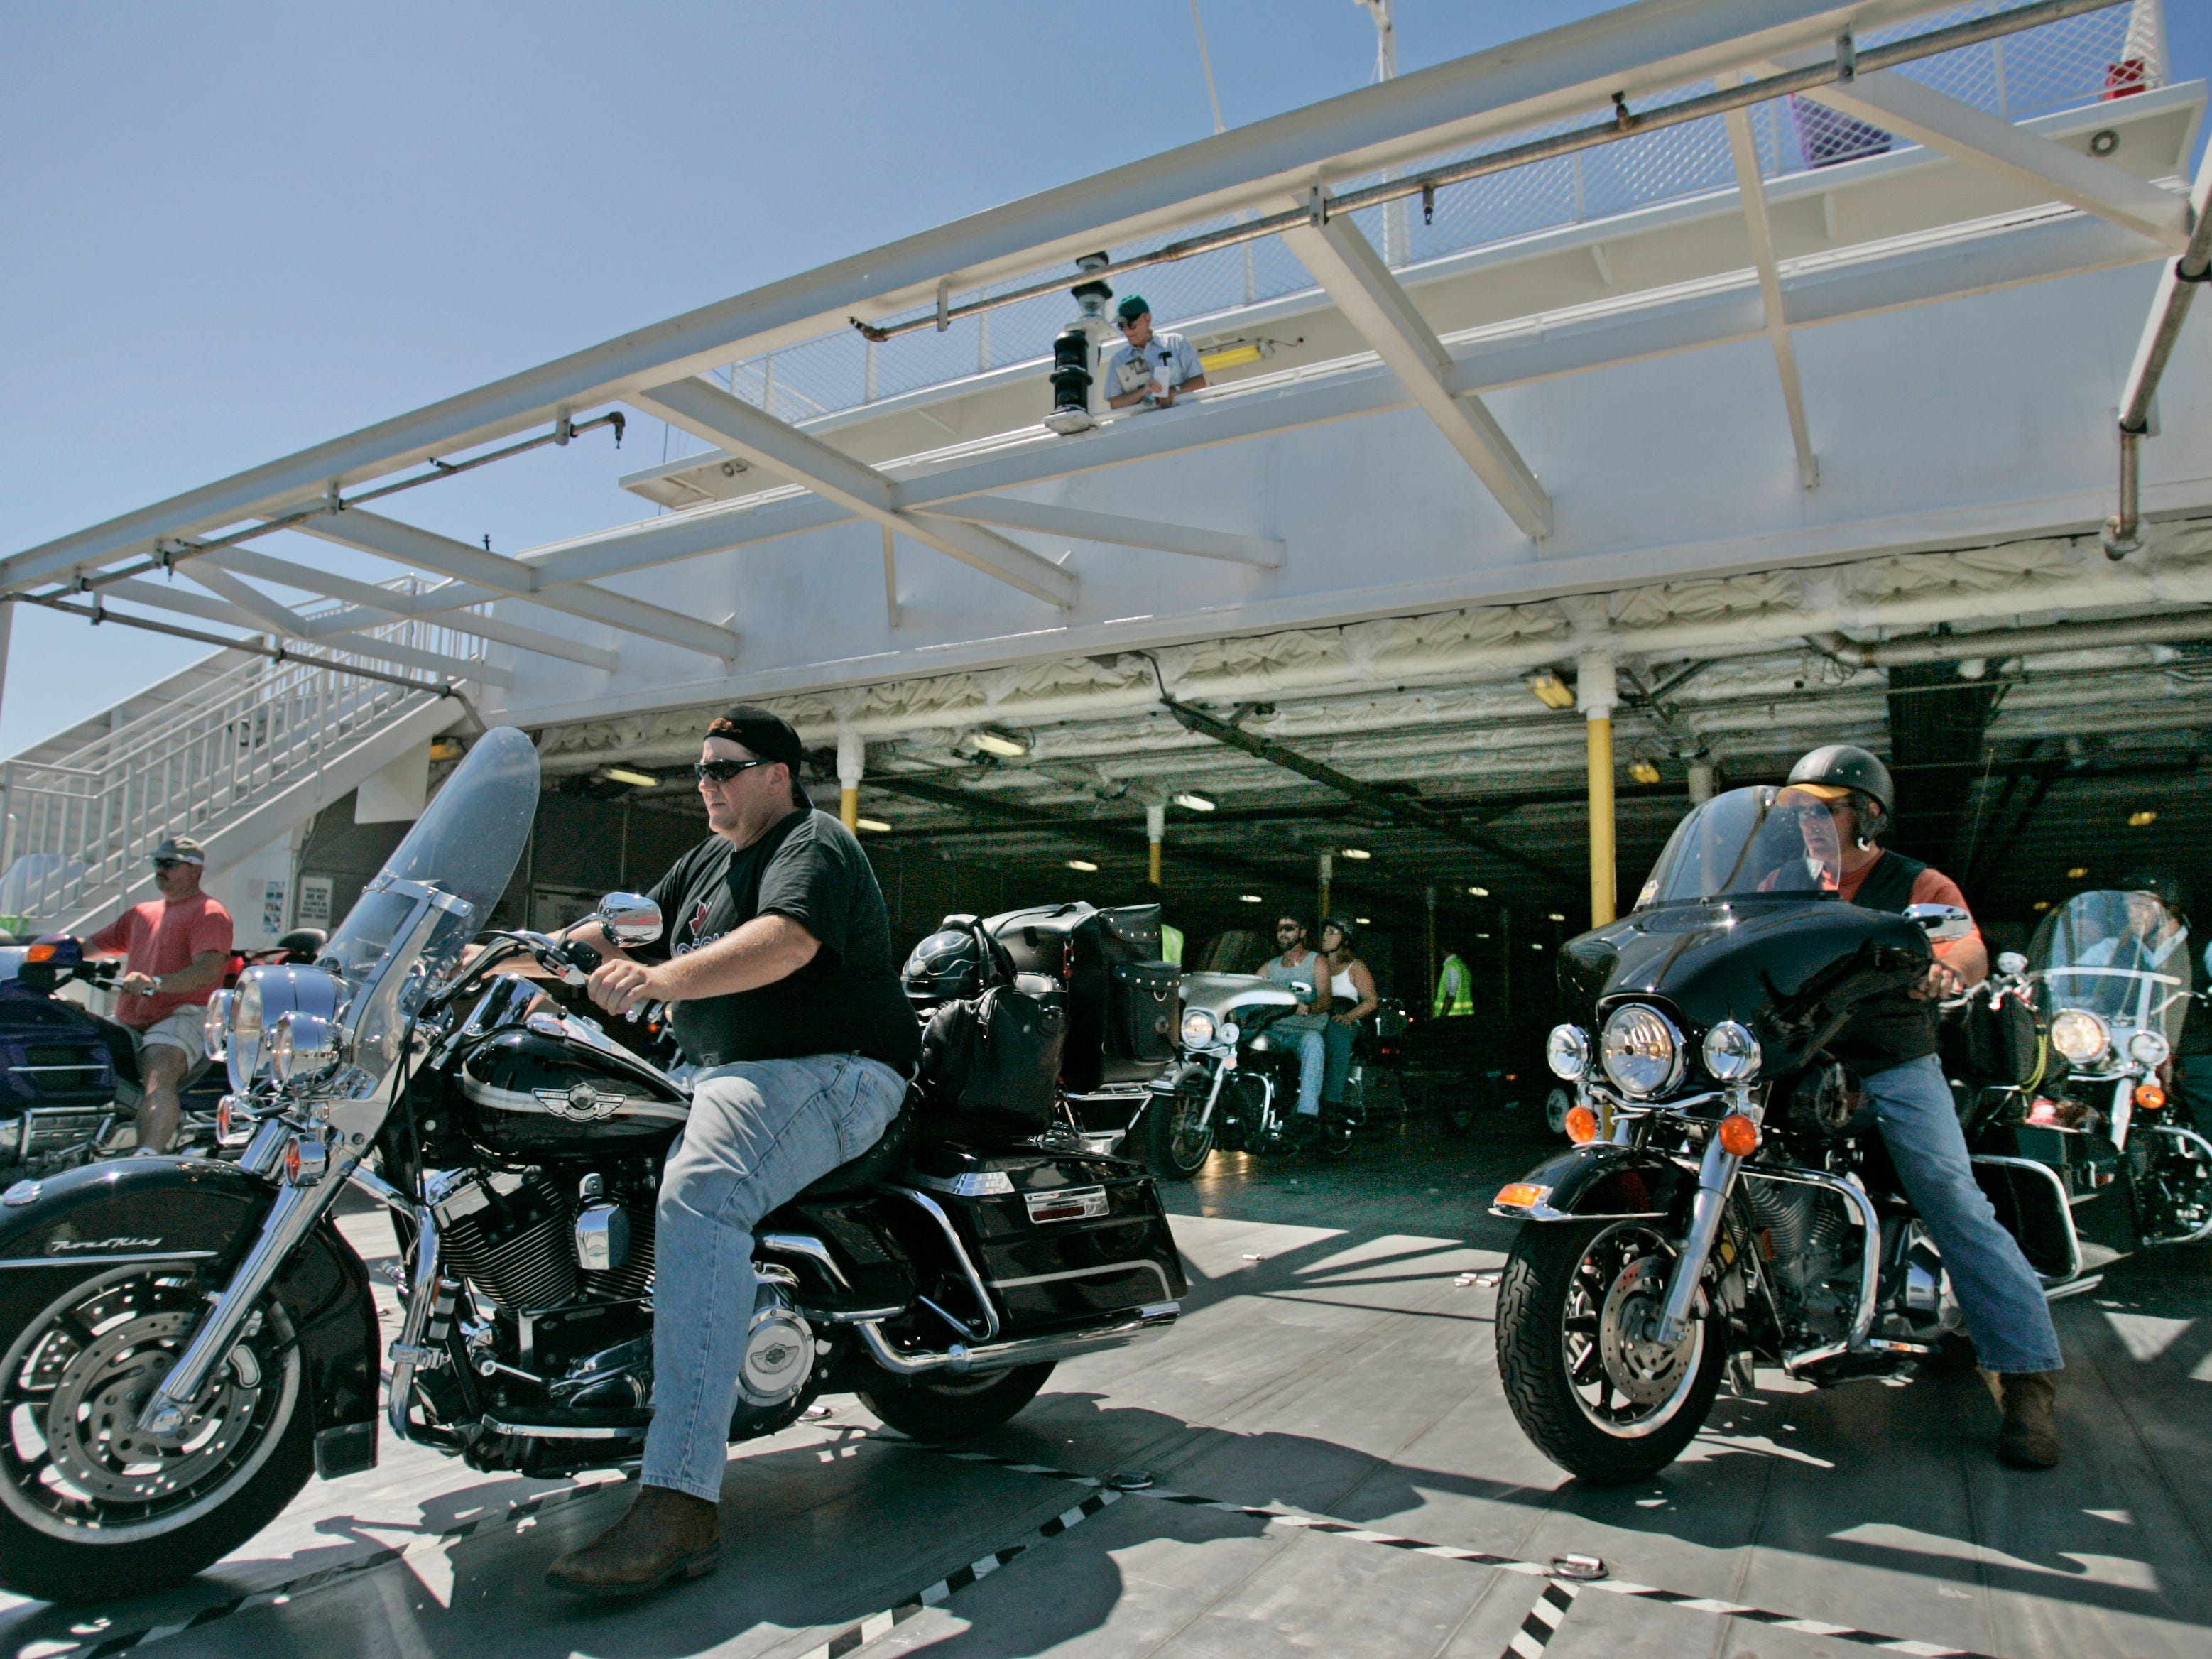 2005: Passengers on the the Lake Express Ferry in Milwaukee watch as 32 motorcycles roar off the ferry after making the trip from Muskegon, Mich.,  en route to the 65th annual Sturgis Motorcycle Rally in Sturgis, S.D. The ferry has become popular with motorcyclist looking for a quick way  around Chicago.